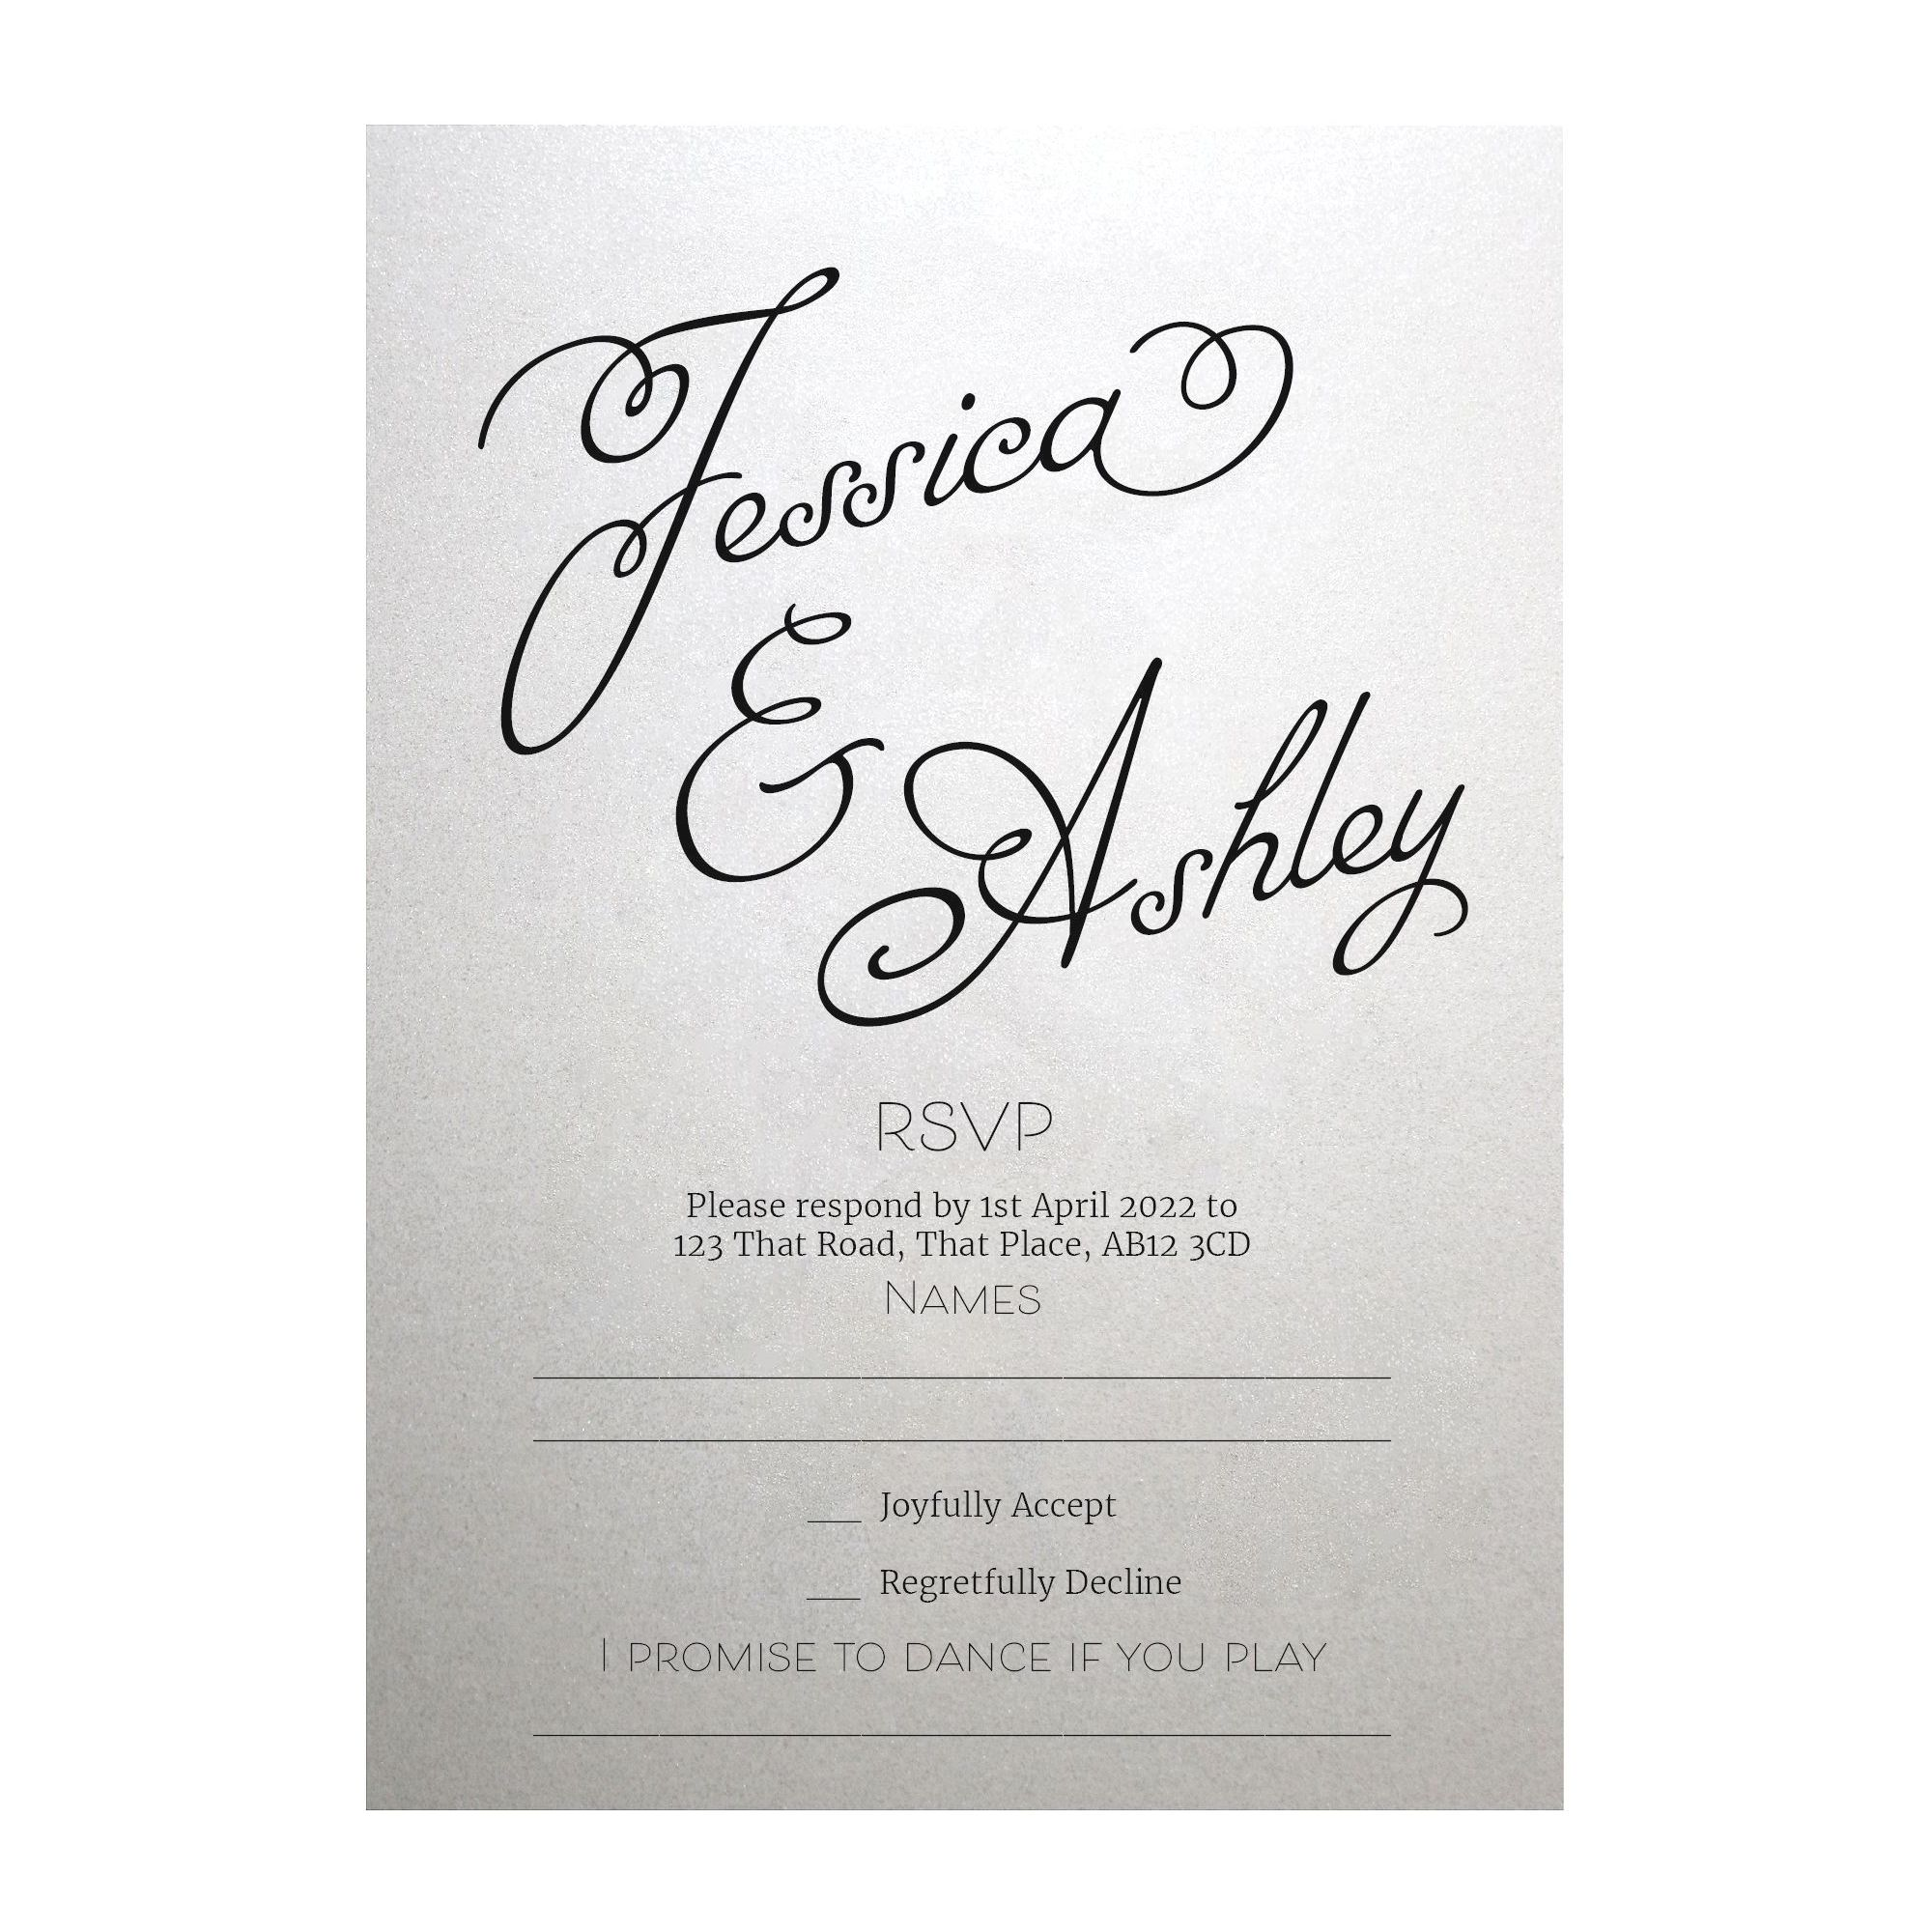 Shimmer Arctic White Classic Swirled Name RSVP Song Request Cards